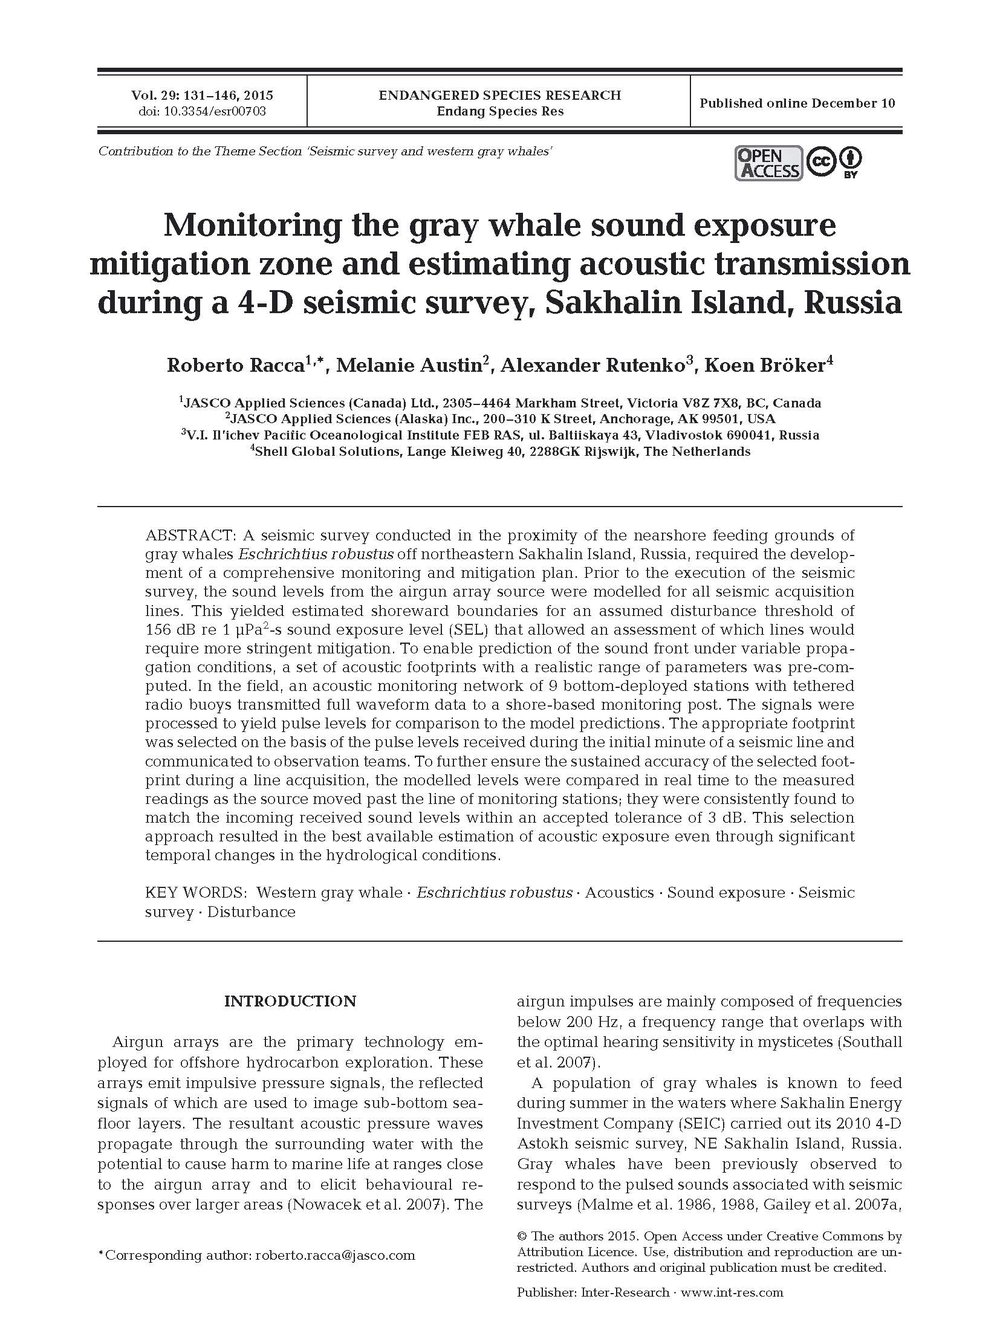 Monitoring the gray whale sound exposure mitigation zone and estimating acoustic transmission during a 4-D seismic survey, Sakhalin Island, Russia - Racca, R., M. Austin, A. Rutenko, and K. BrökerEndang. Species Res. 29: 131-146 (2015)doi.org/10.3354/esr00703